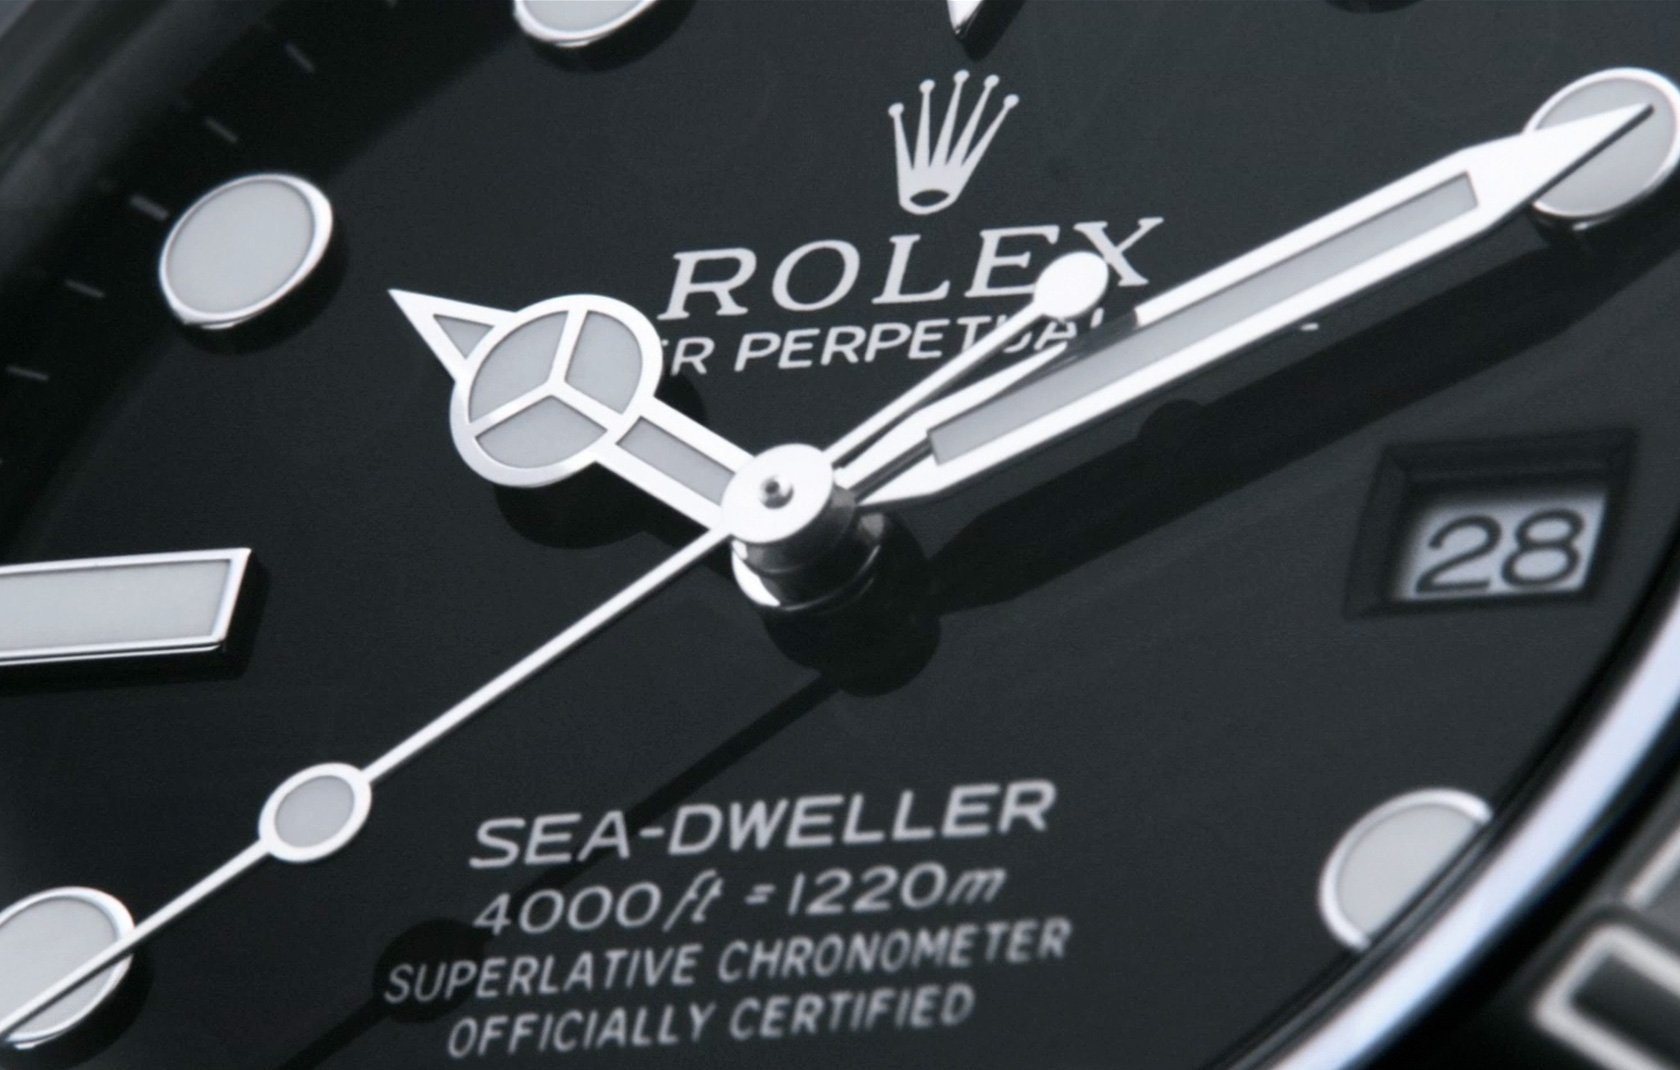 Die Rolex Sea Dweller – into the details